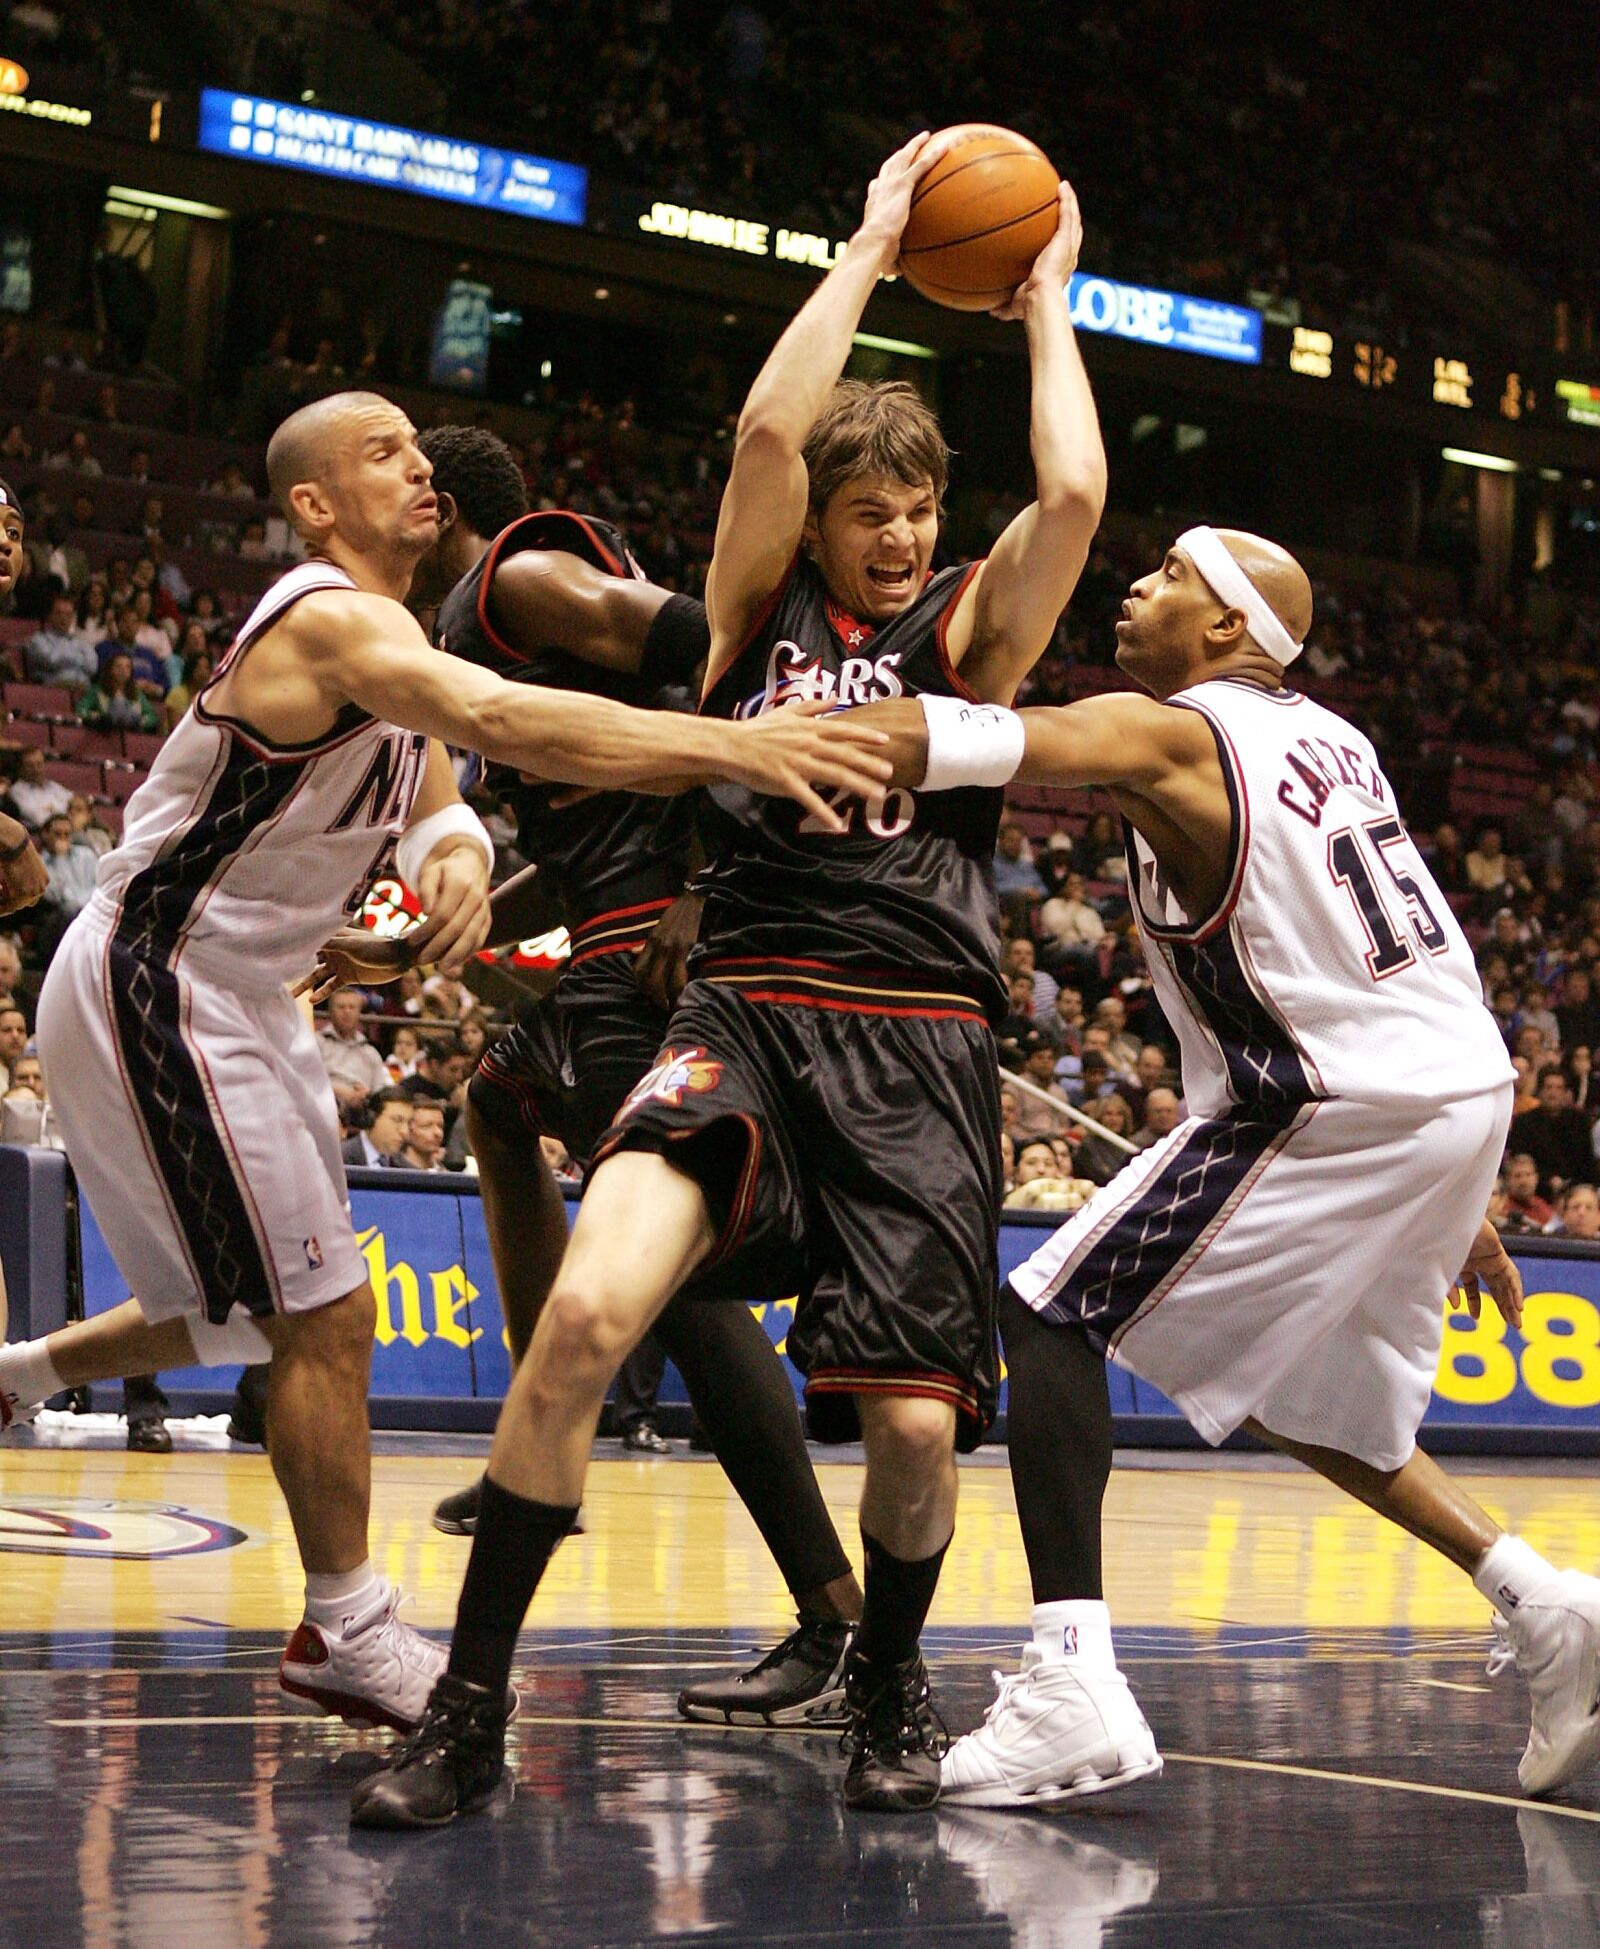 d7efb0343353 Philadelphia 76ers  Kyle Korver should finish out his career in Philly